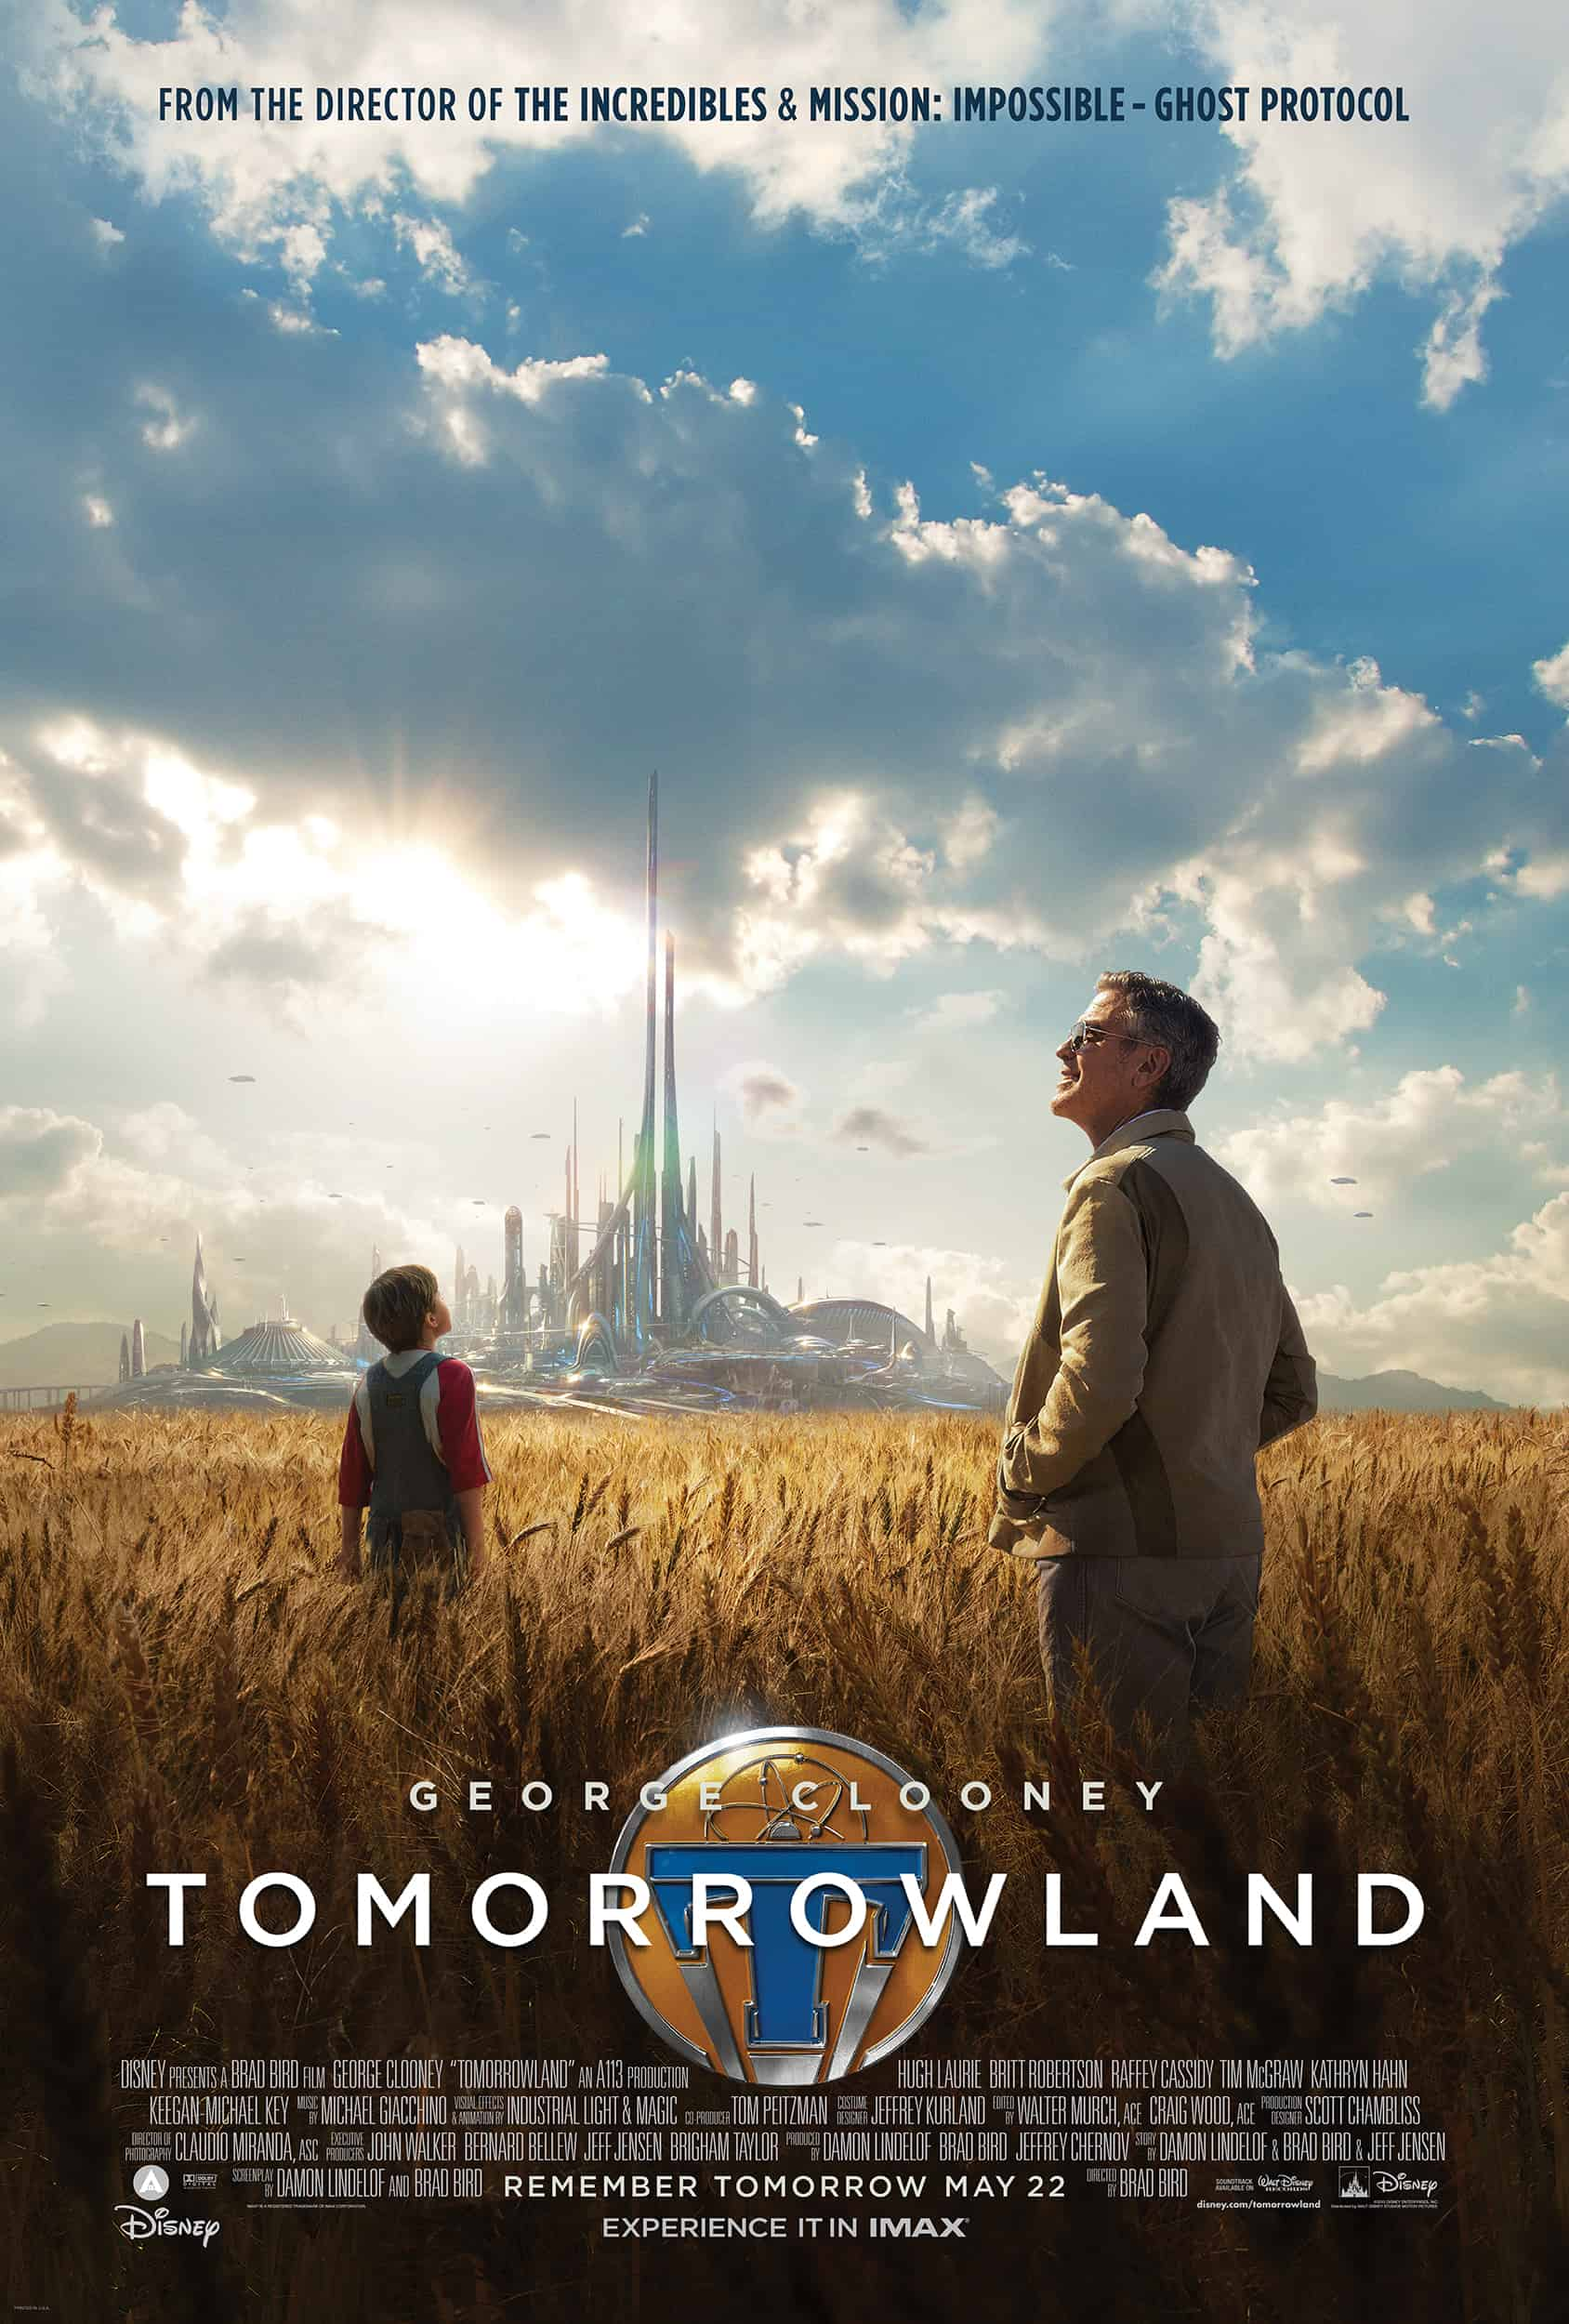 If you are like me, you've been looking forward to this film when it was just a title – Tomorrowland. The name held so much promise and hope…getting to see sneak peeks at the Disney D23 Expo in 2013, was just enough excitement to make believers out of so many. […]